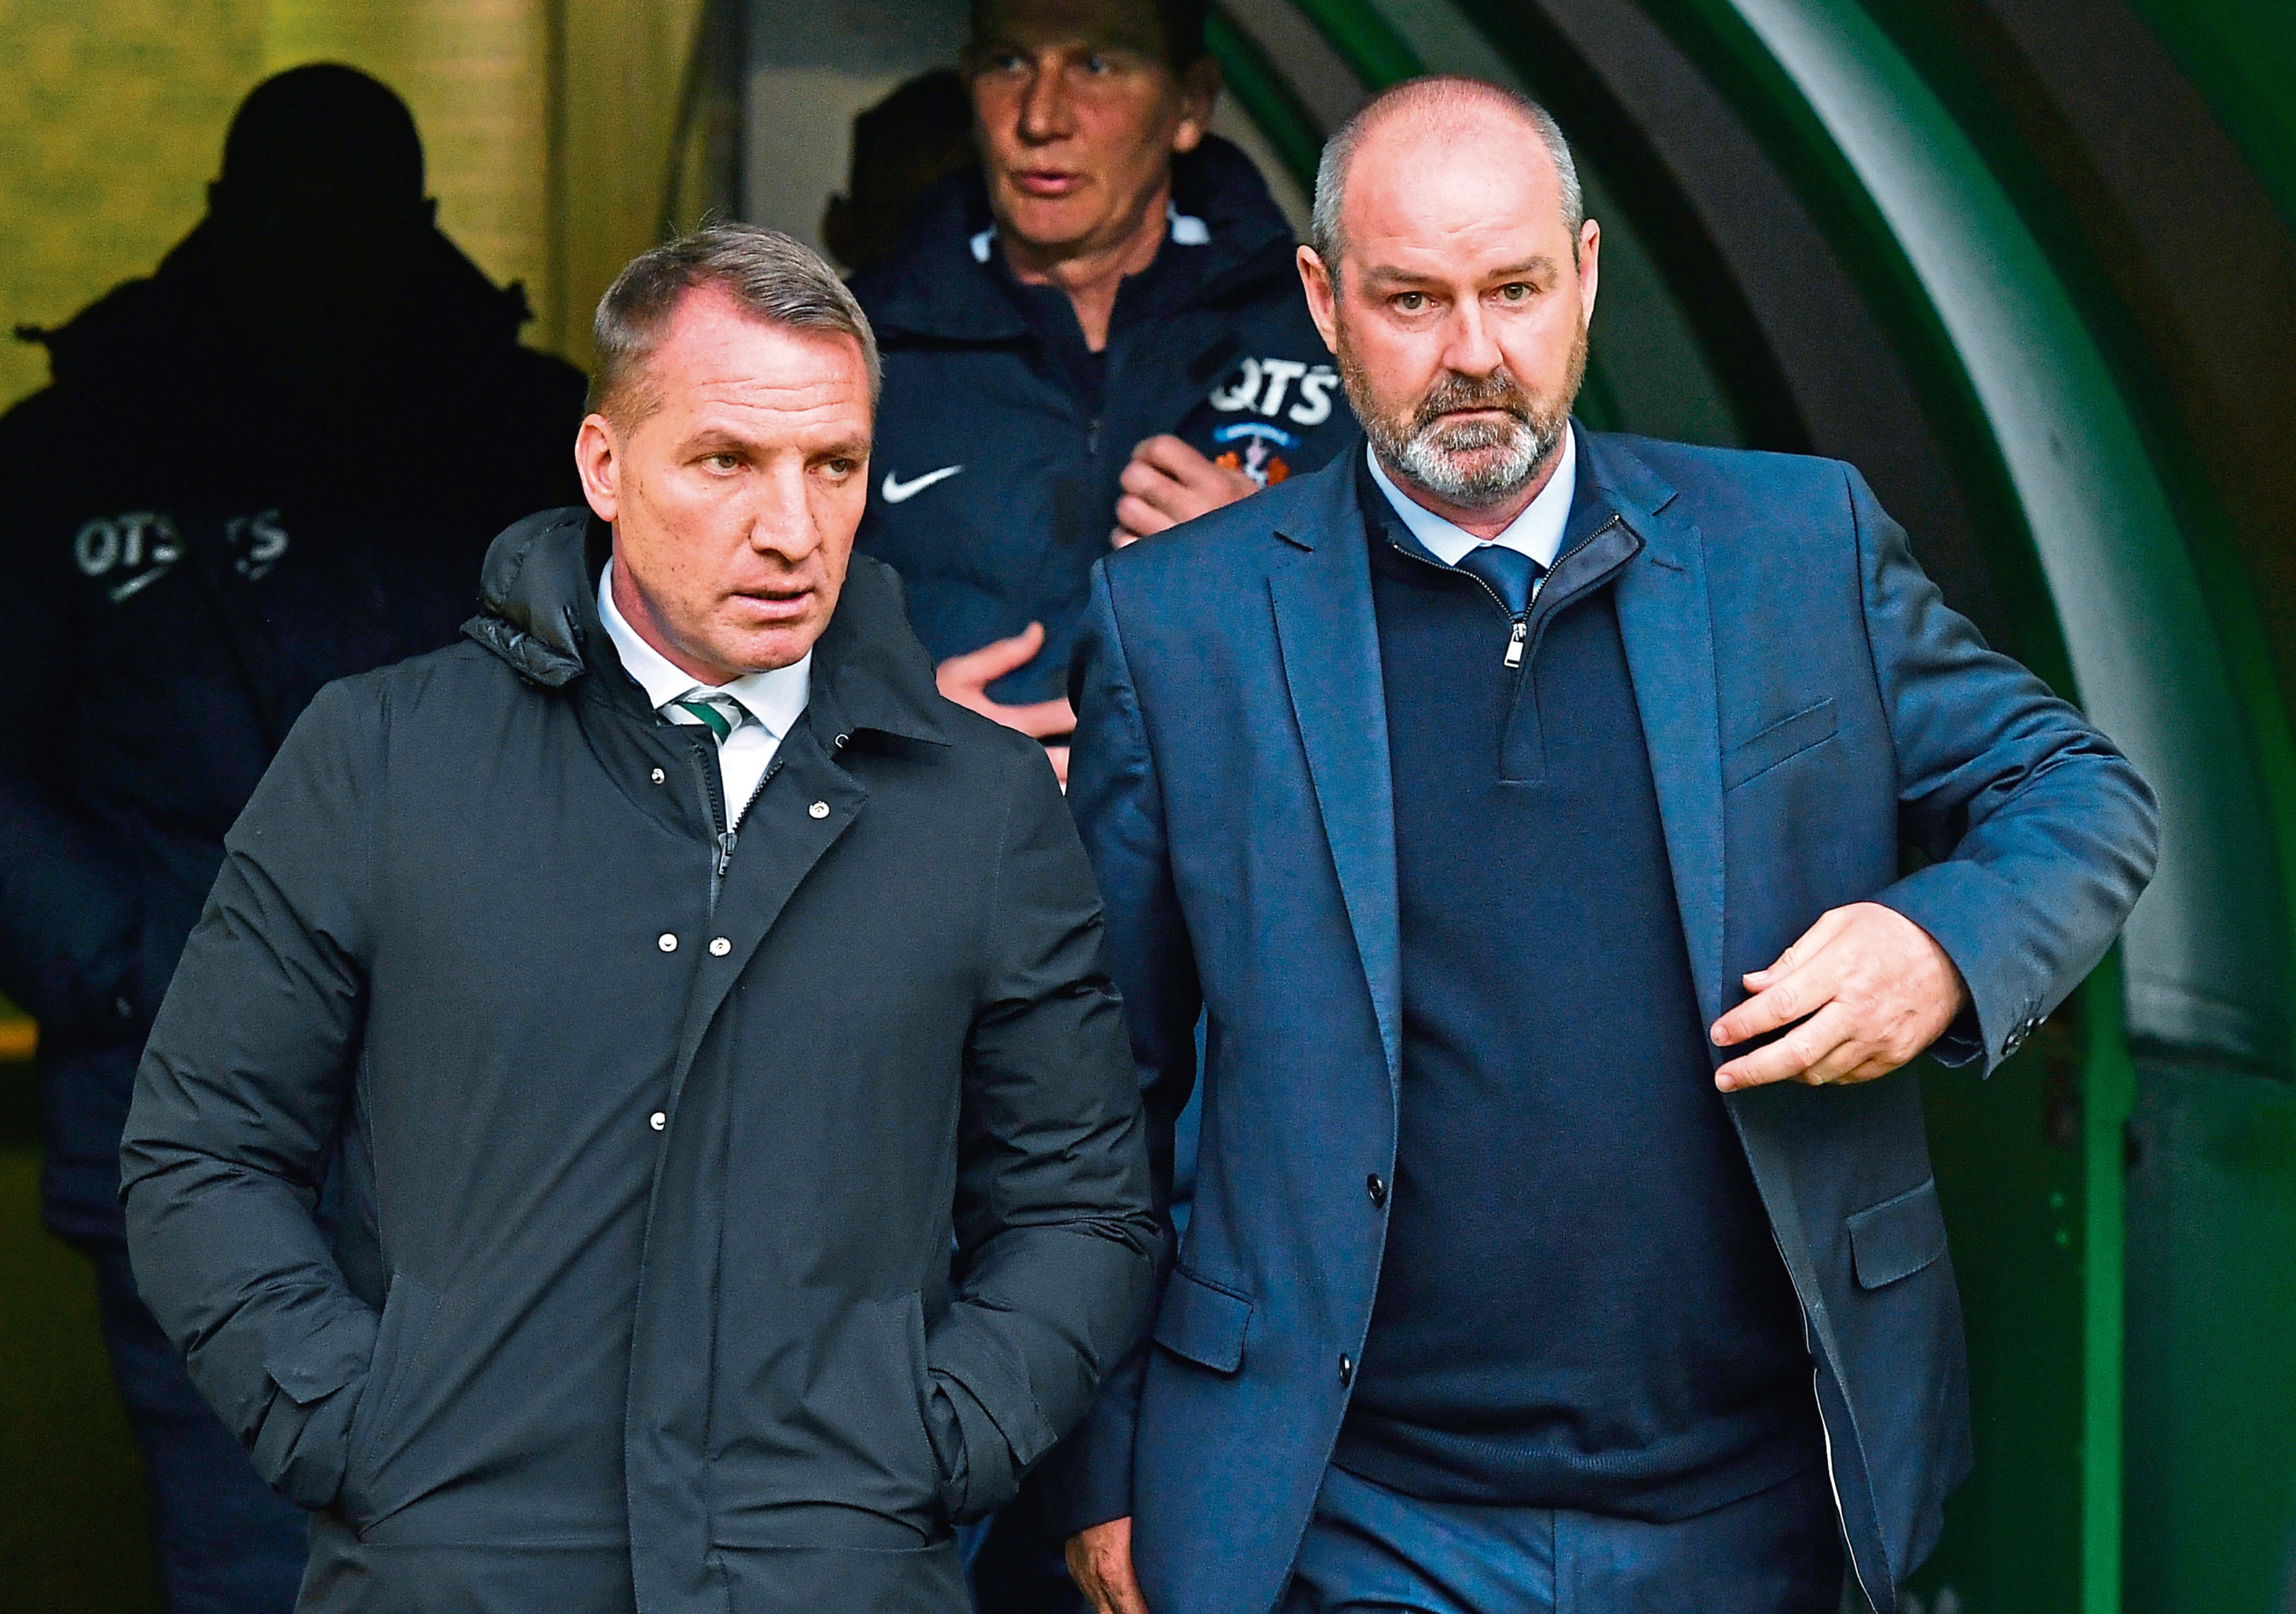 Celtic manager Brendan Rodgers and Kilmarnock manager Steve Clarke emerge from the tunnel